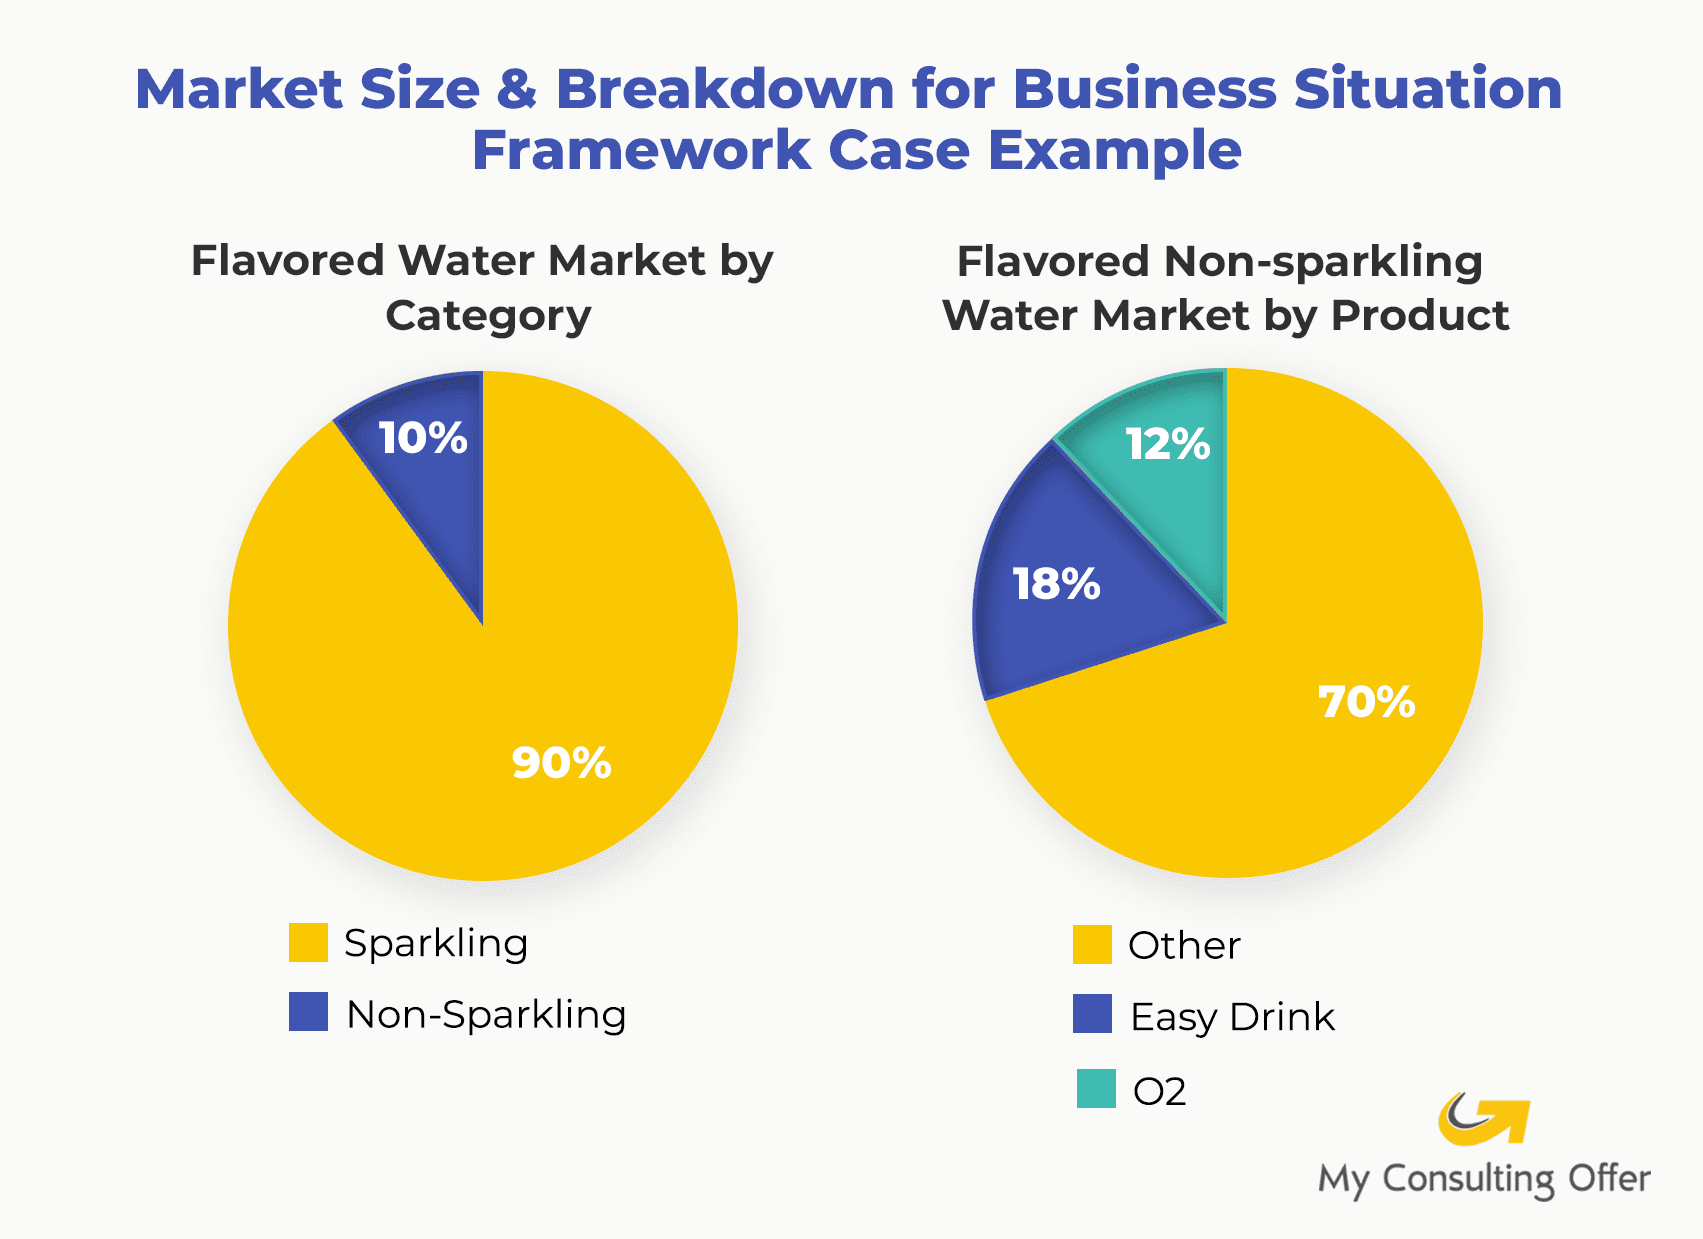 Market Size & Breakdown for Business Situation Framework Case Example